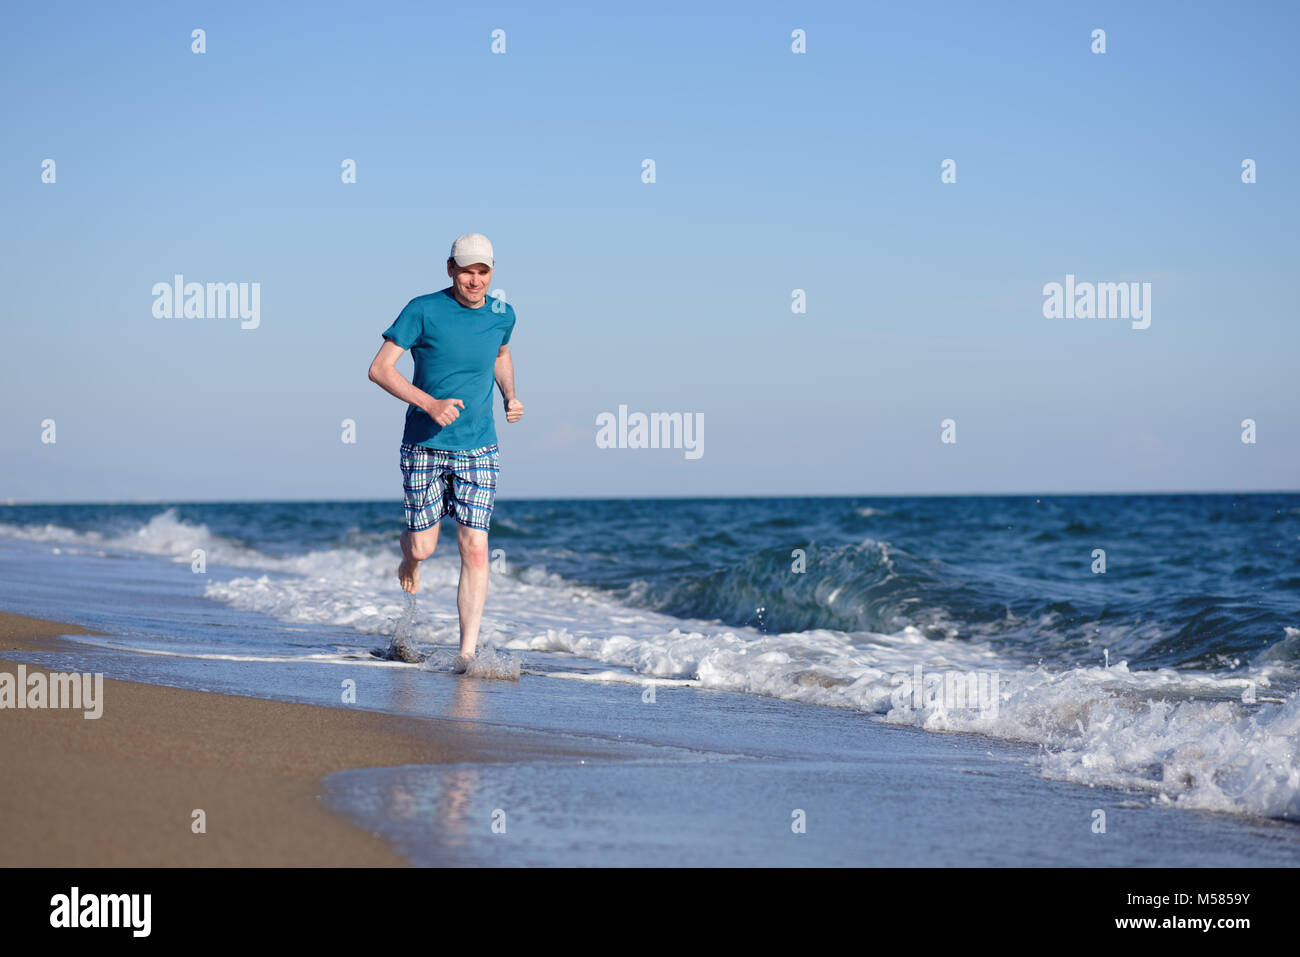 Barefoot mature man during jogging on a beach - Stock Image